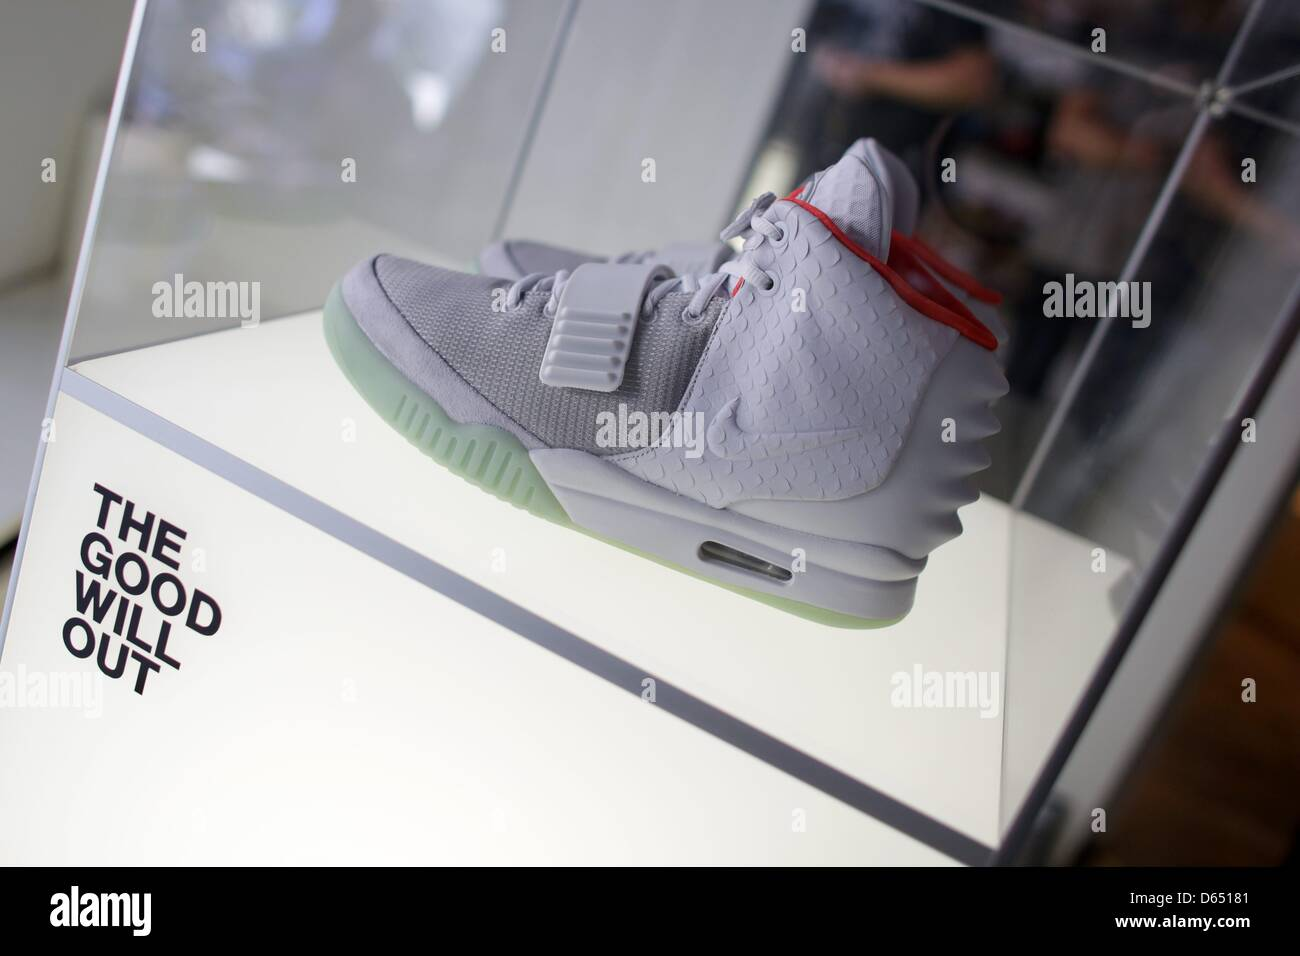 The Nike Air Yeezy II is displayed at 'The Good Will Out' sneaker store in Cologne, Germany, 08 June 2012. - Stock Image